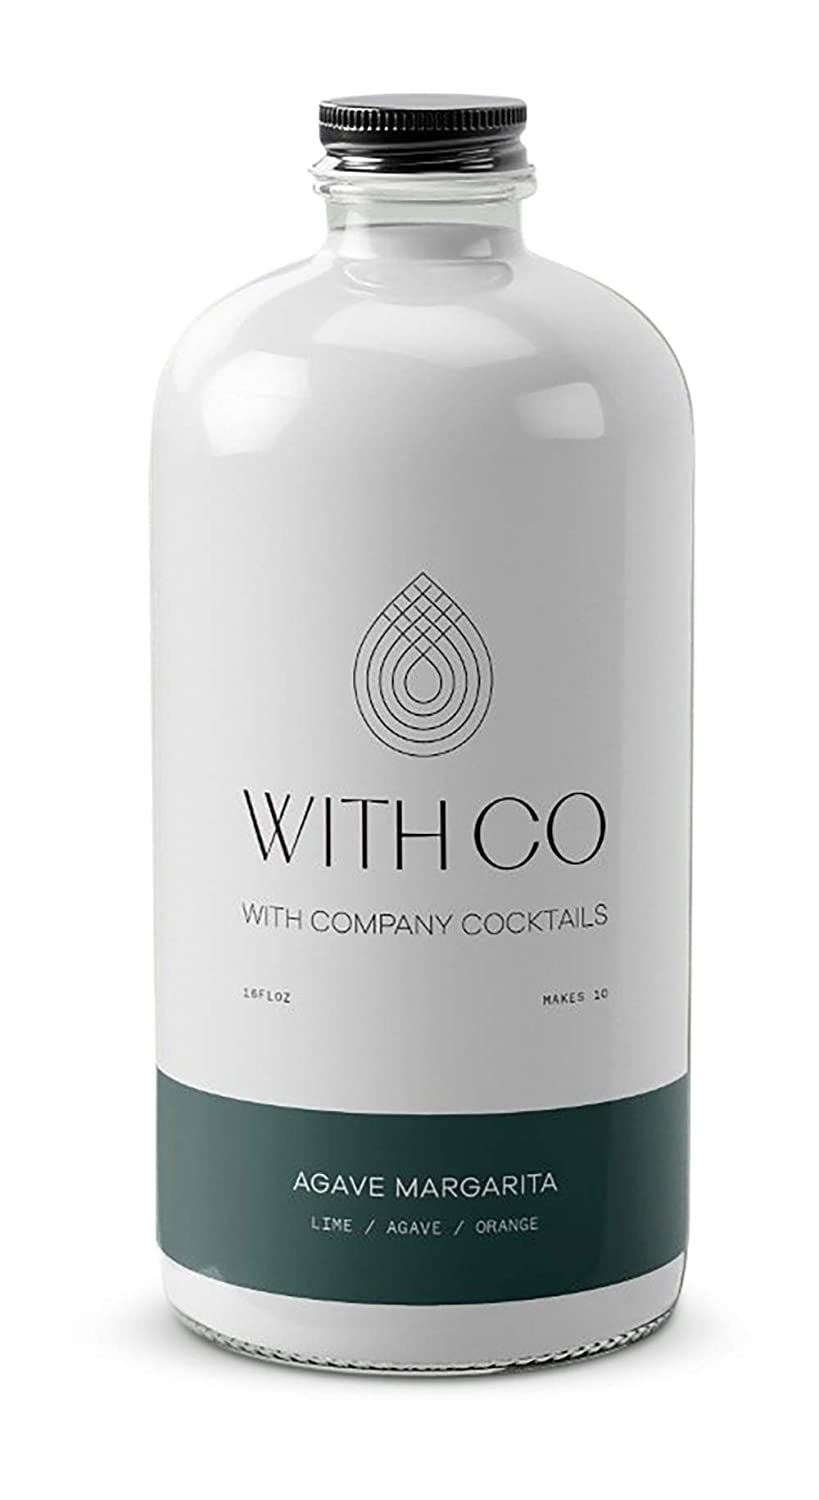 WithCo Agave Margarita Cocktail Mixer